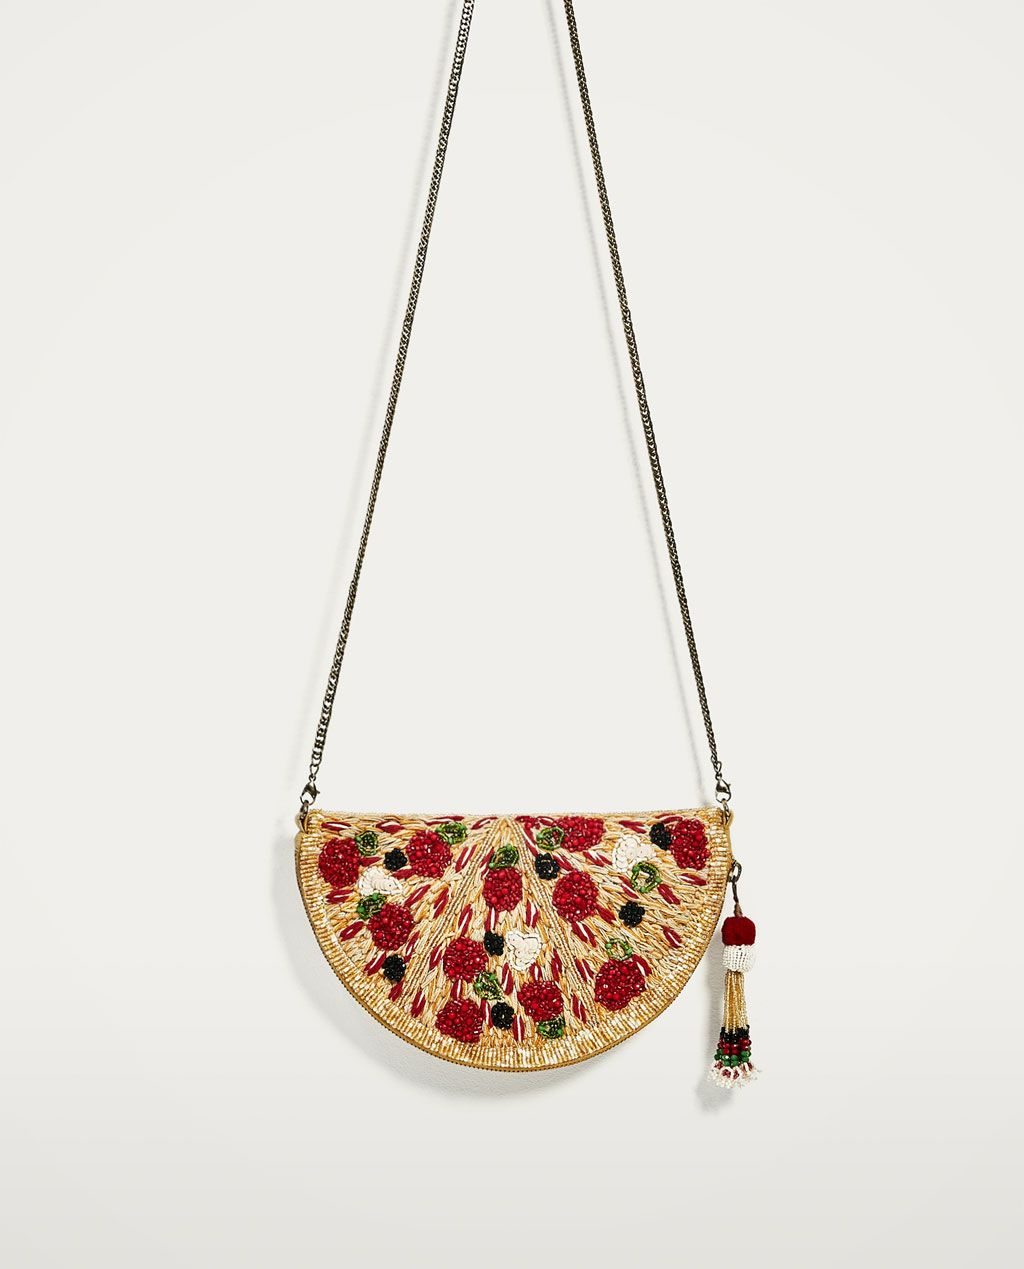 975b00ea4 PIZZA CROSSBODY BAG-View all-BAGS-WOMAN-SALE | ZARA United States ...